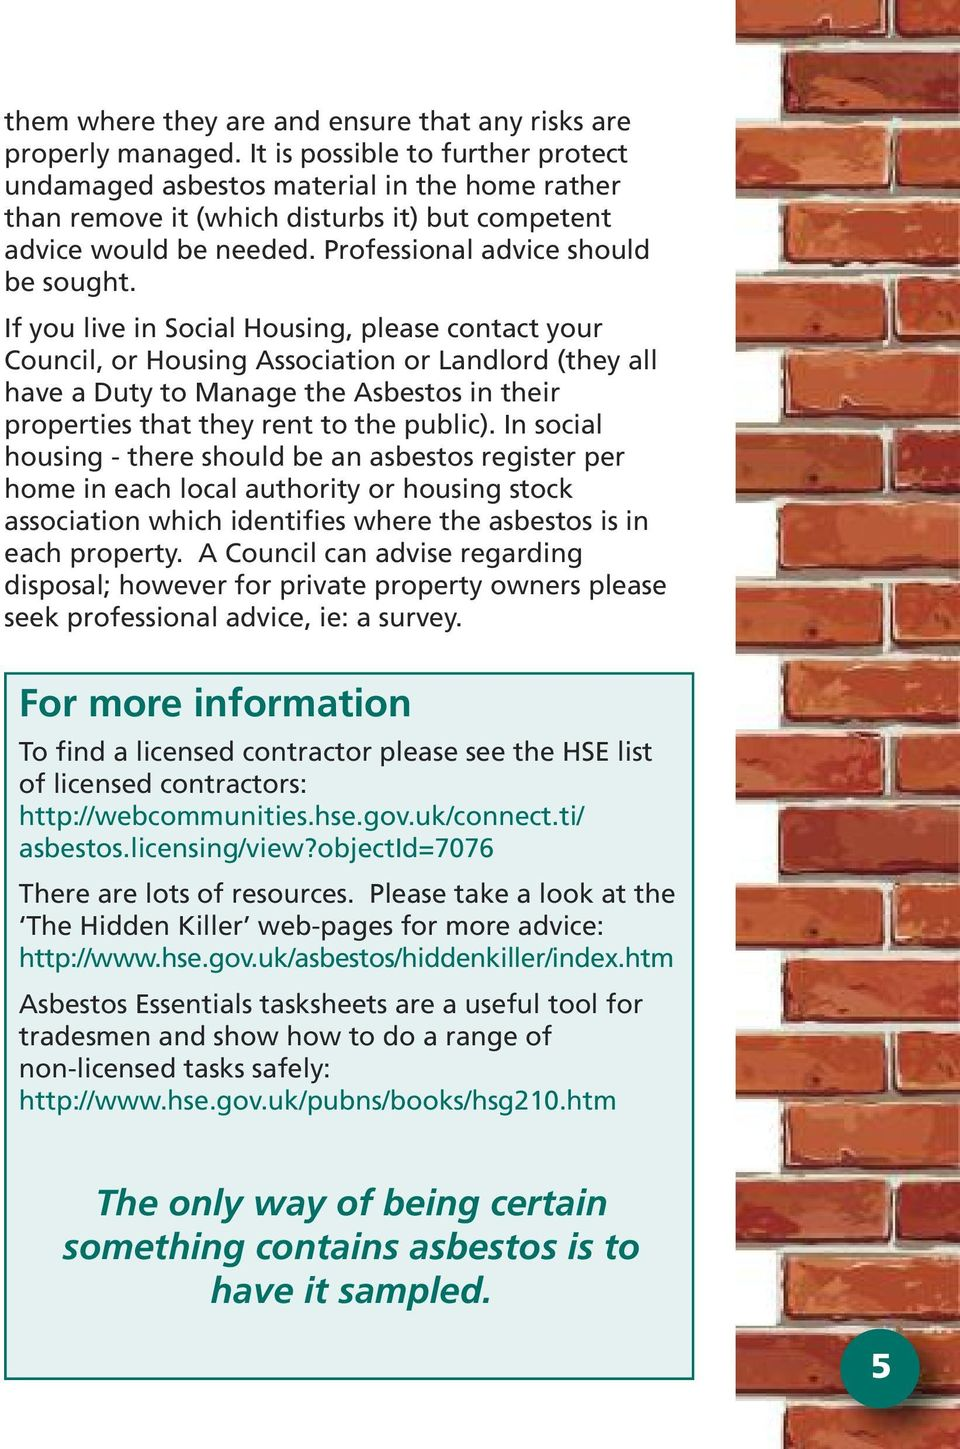 If you live in Social Housing, please contact your Council, or Housing Association or Landlord (they all have a Duty to Manage the Asbestos in their properties that they rent to the public).